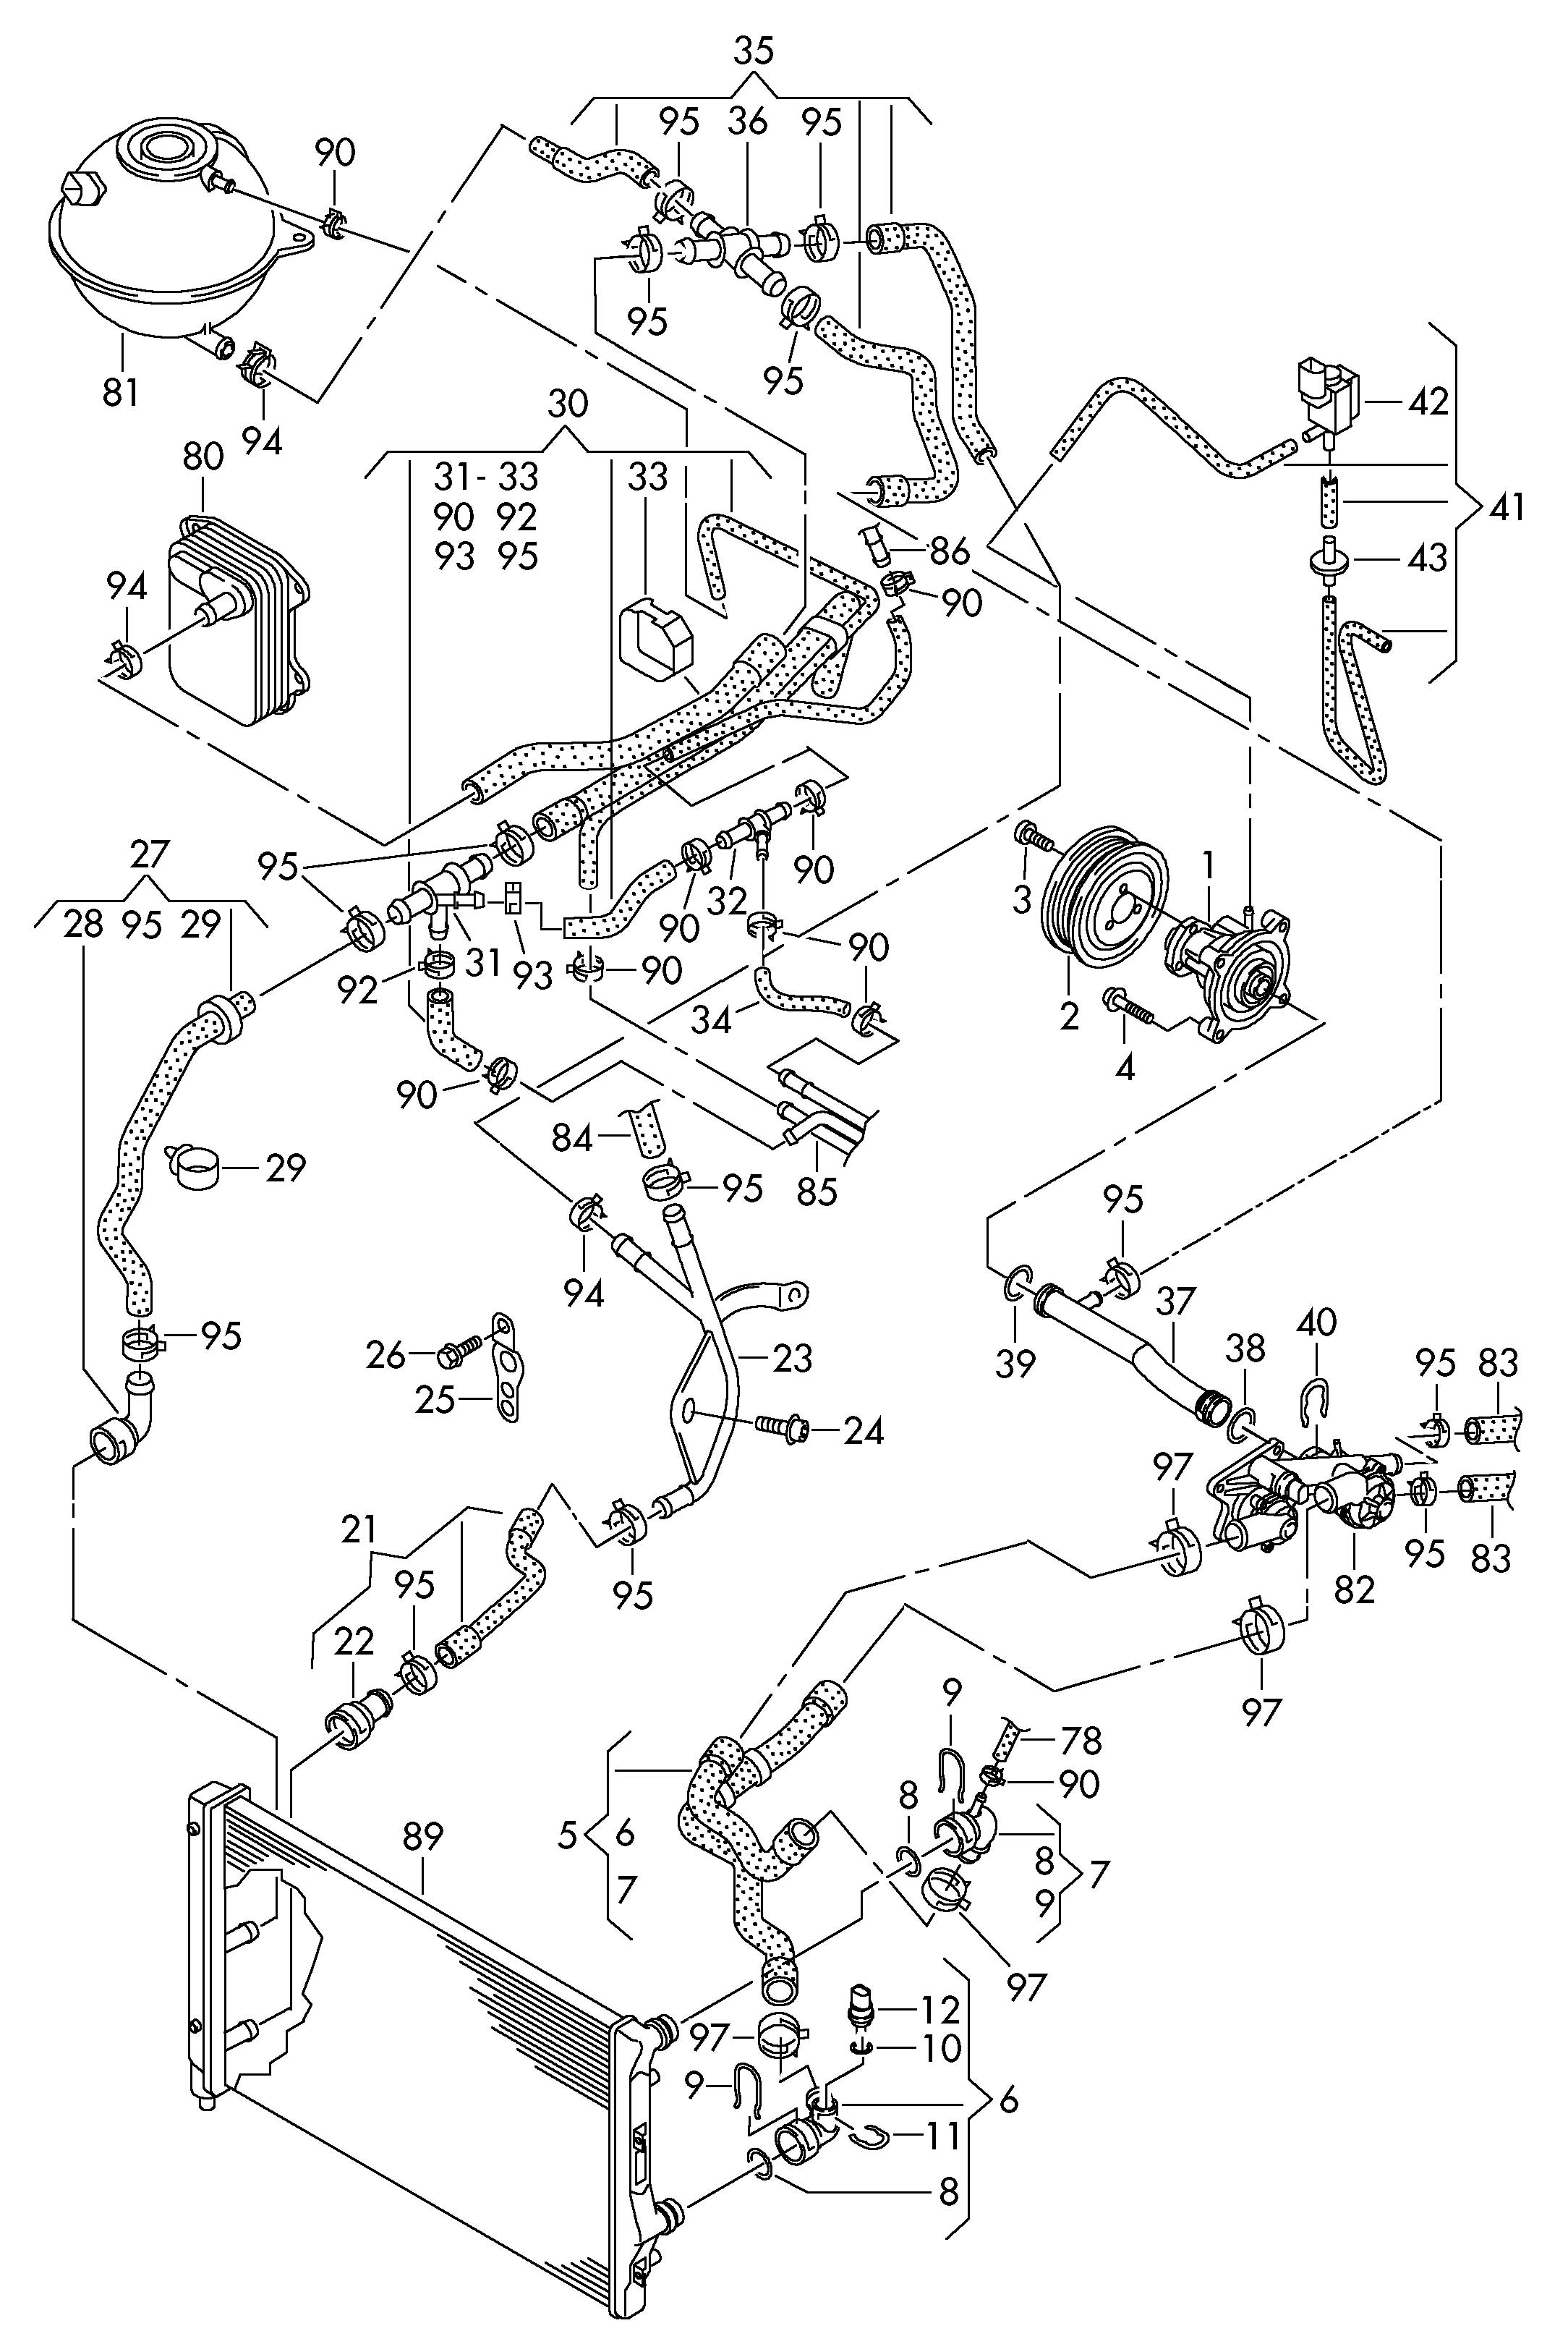 Diagram Vw Jetta 5 Cylinder Engine Diagram Full